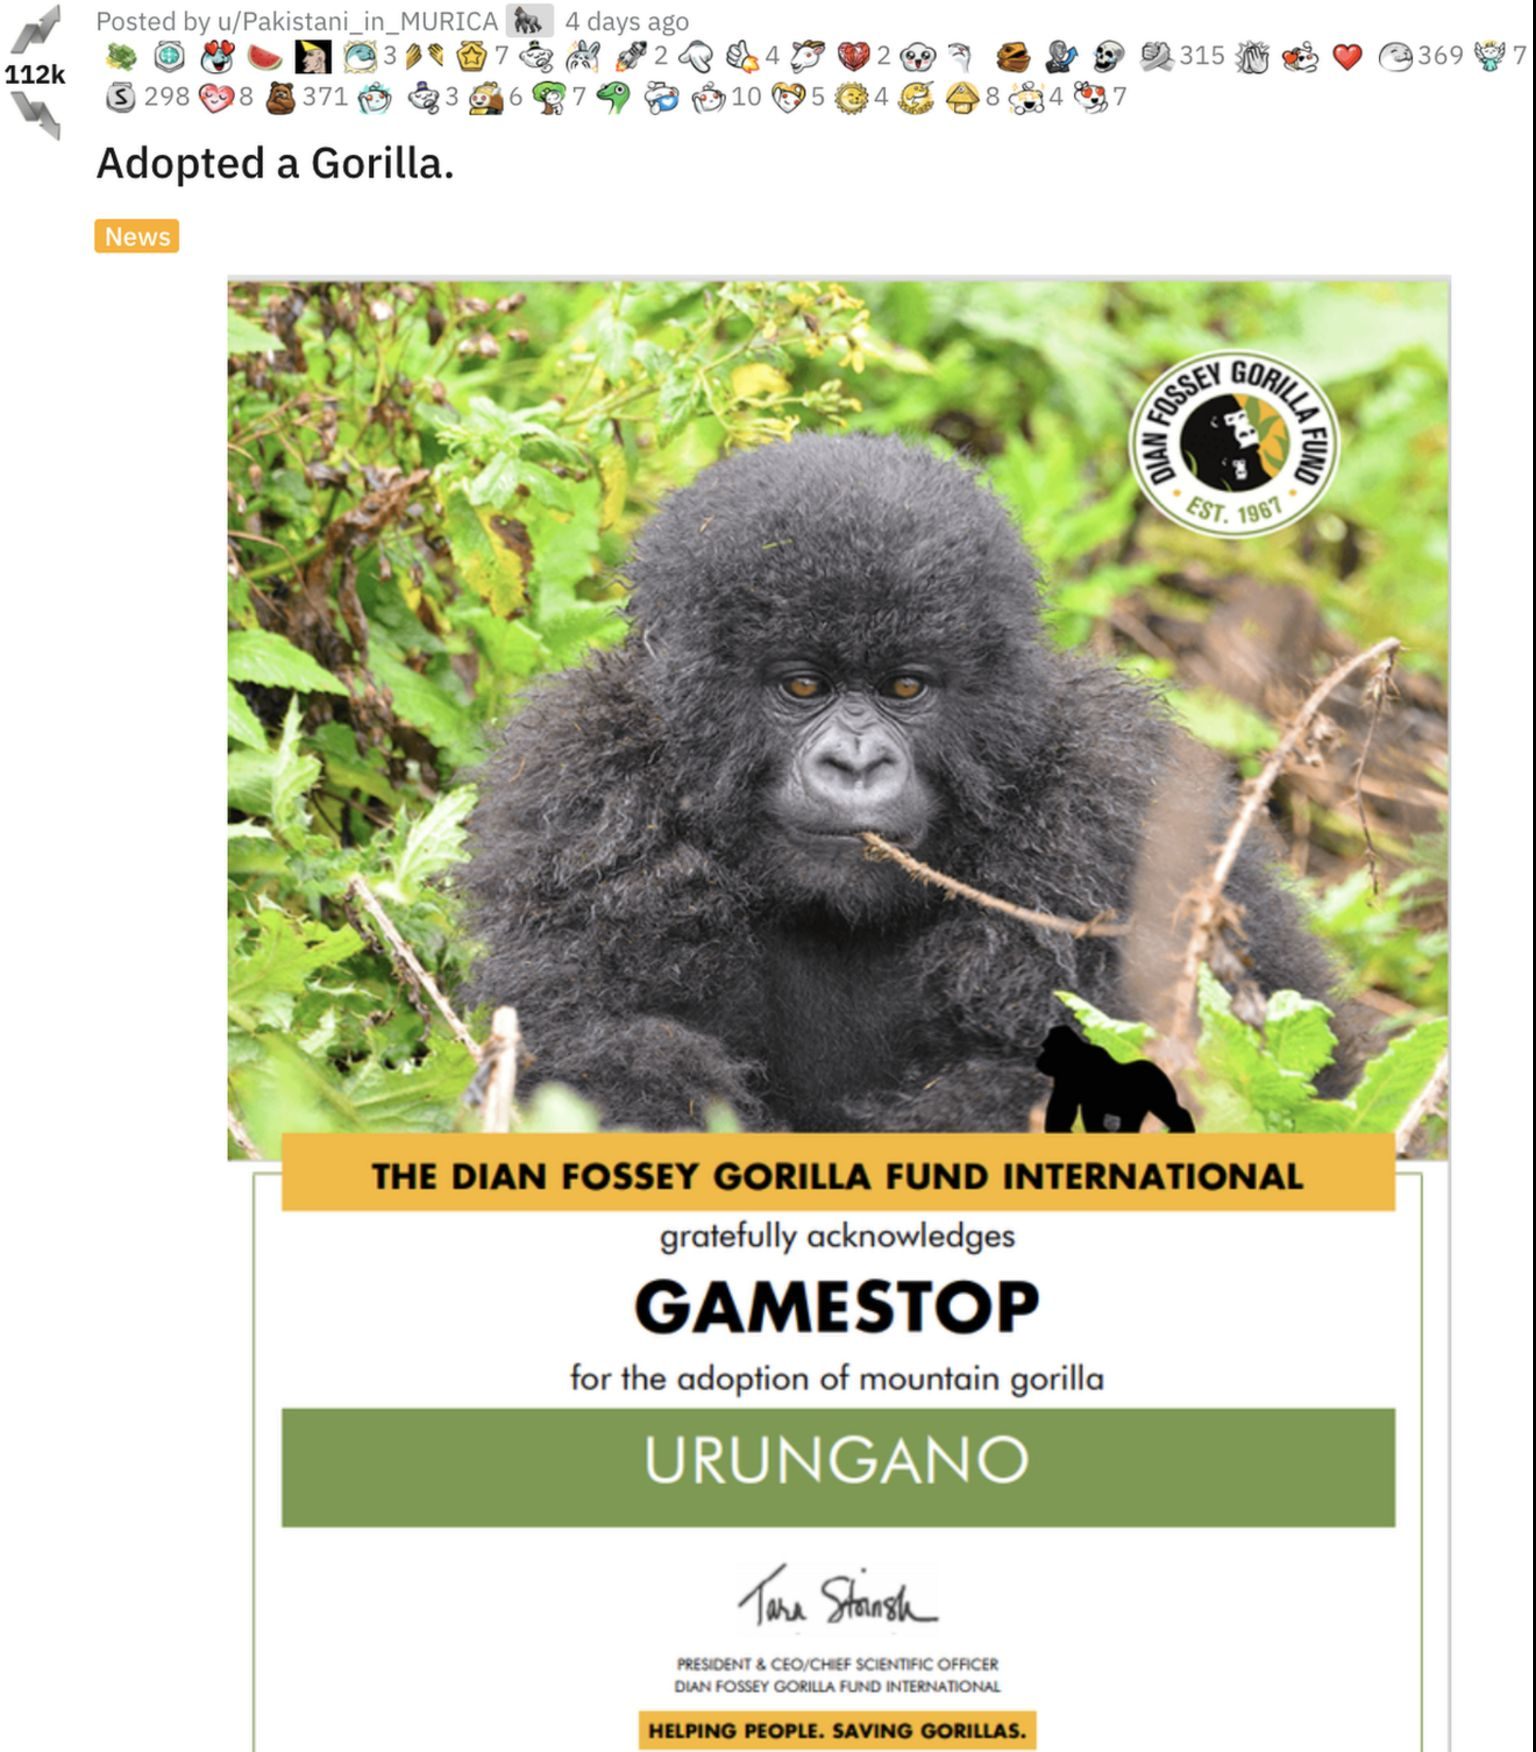 An adoption certificate showing an infant gorilla named Urungano